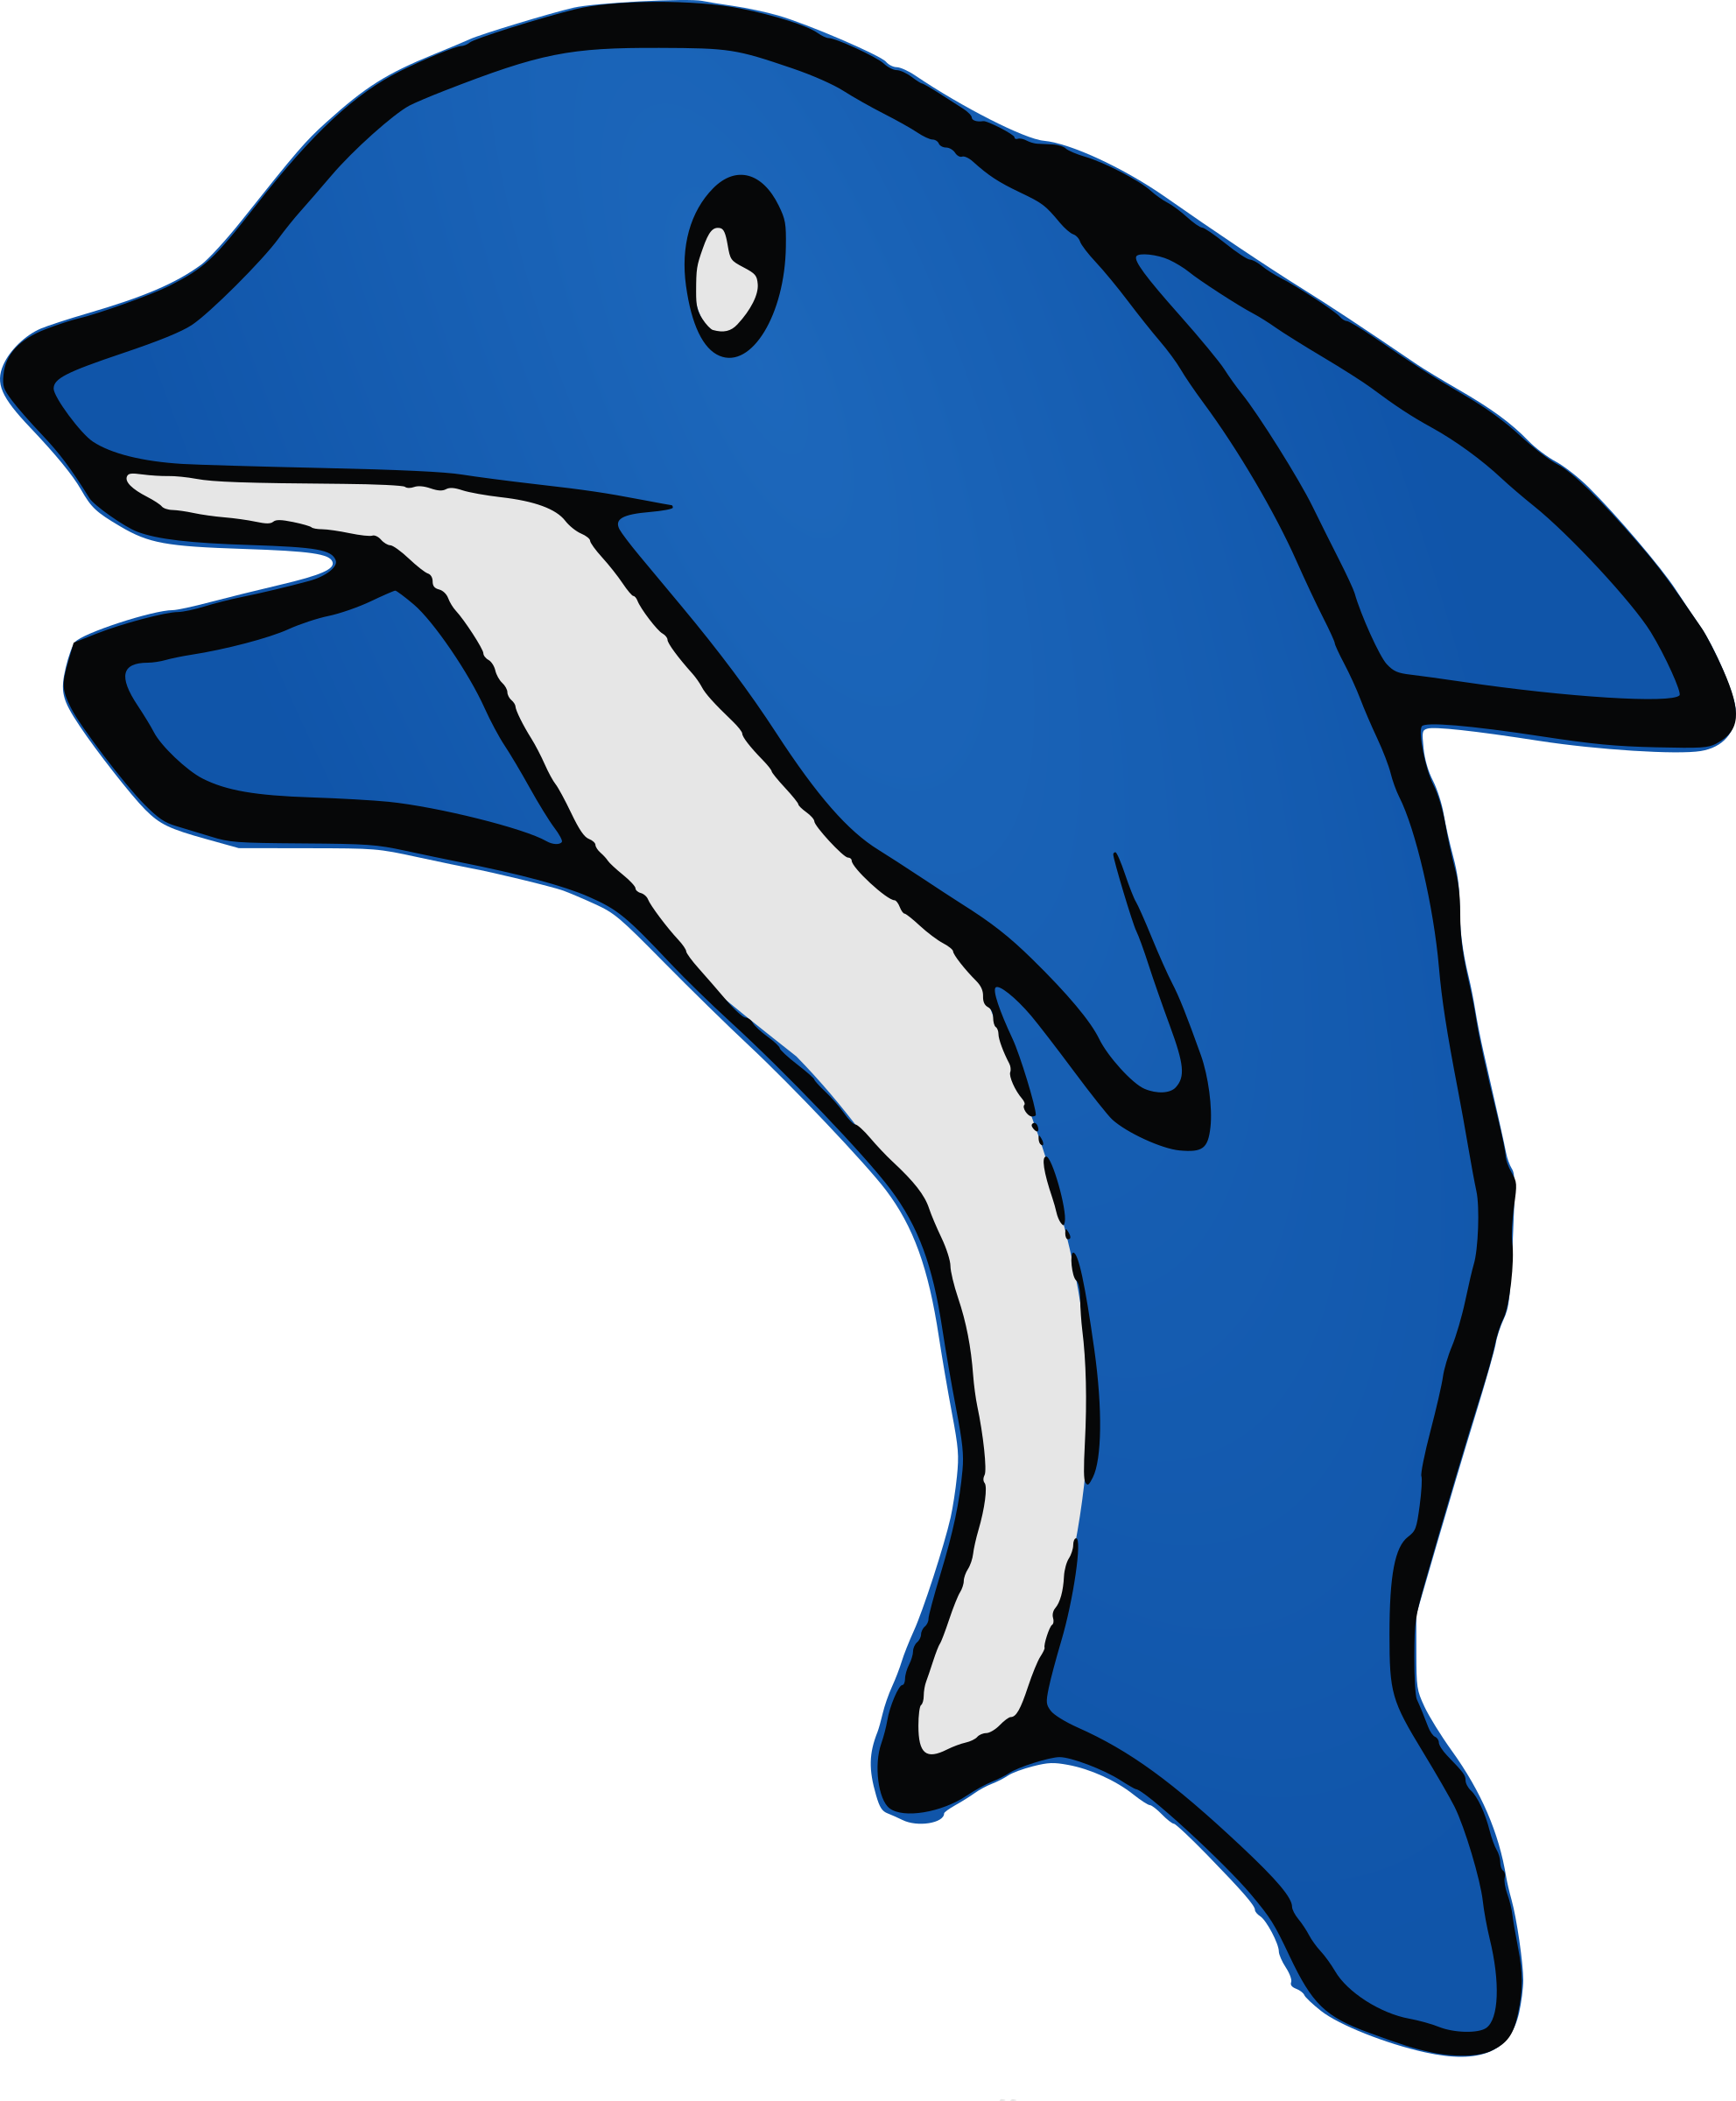 Big image png. Clipart dolphin basic